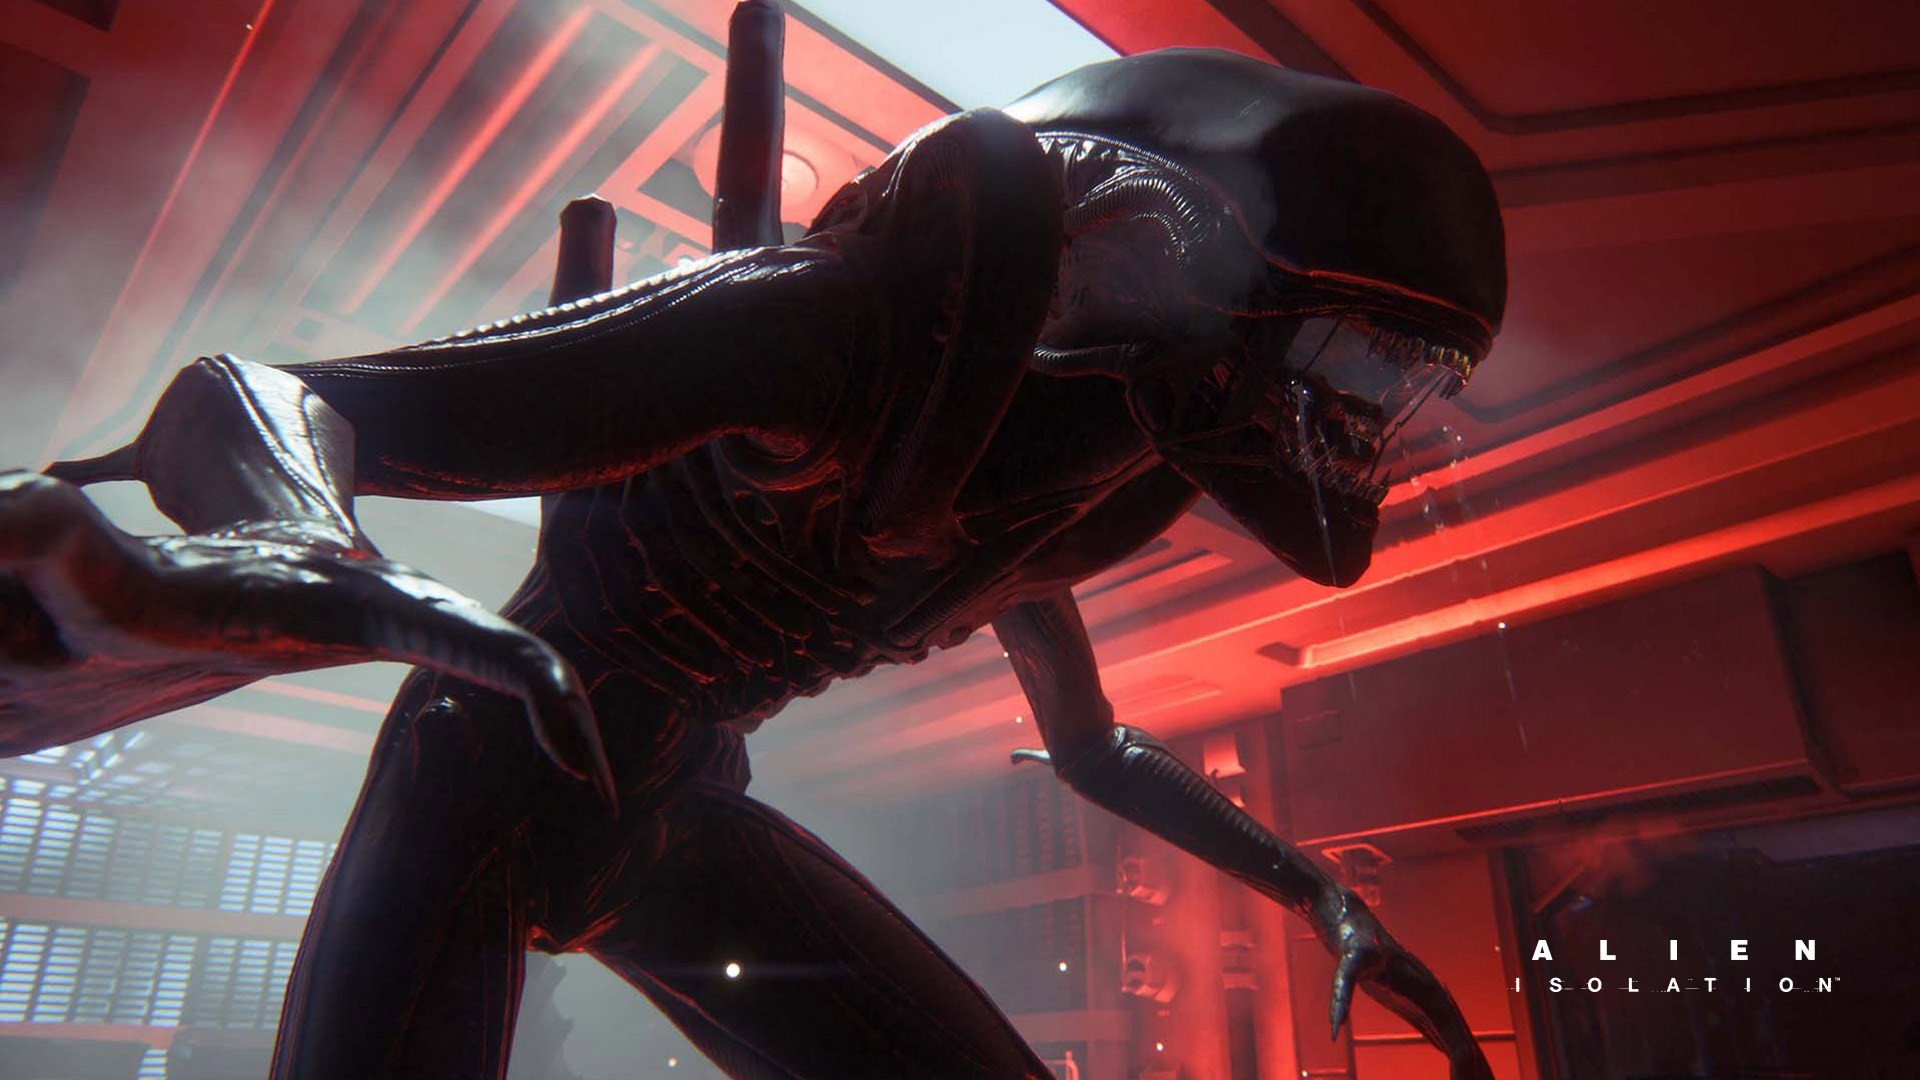 free computer wallpaper for alien isolation